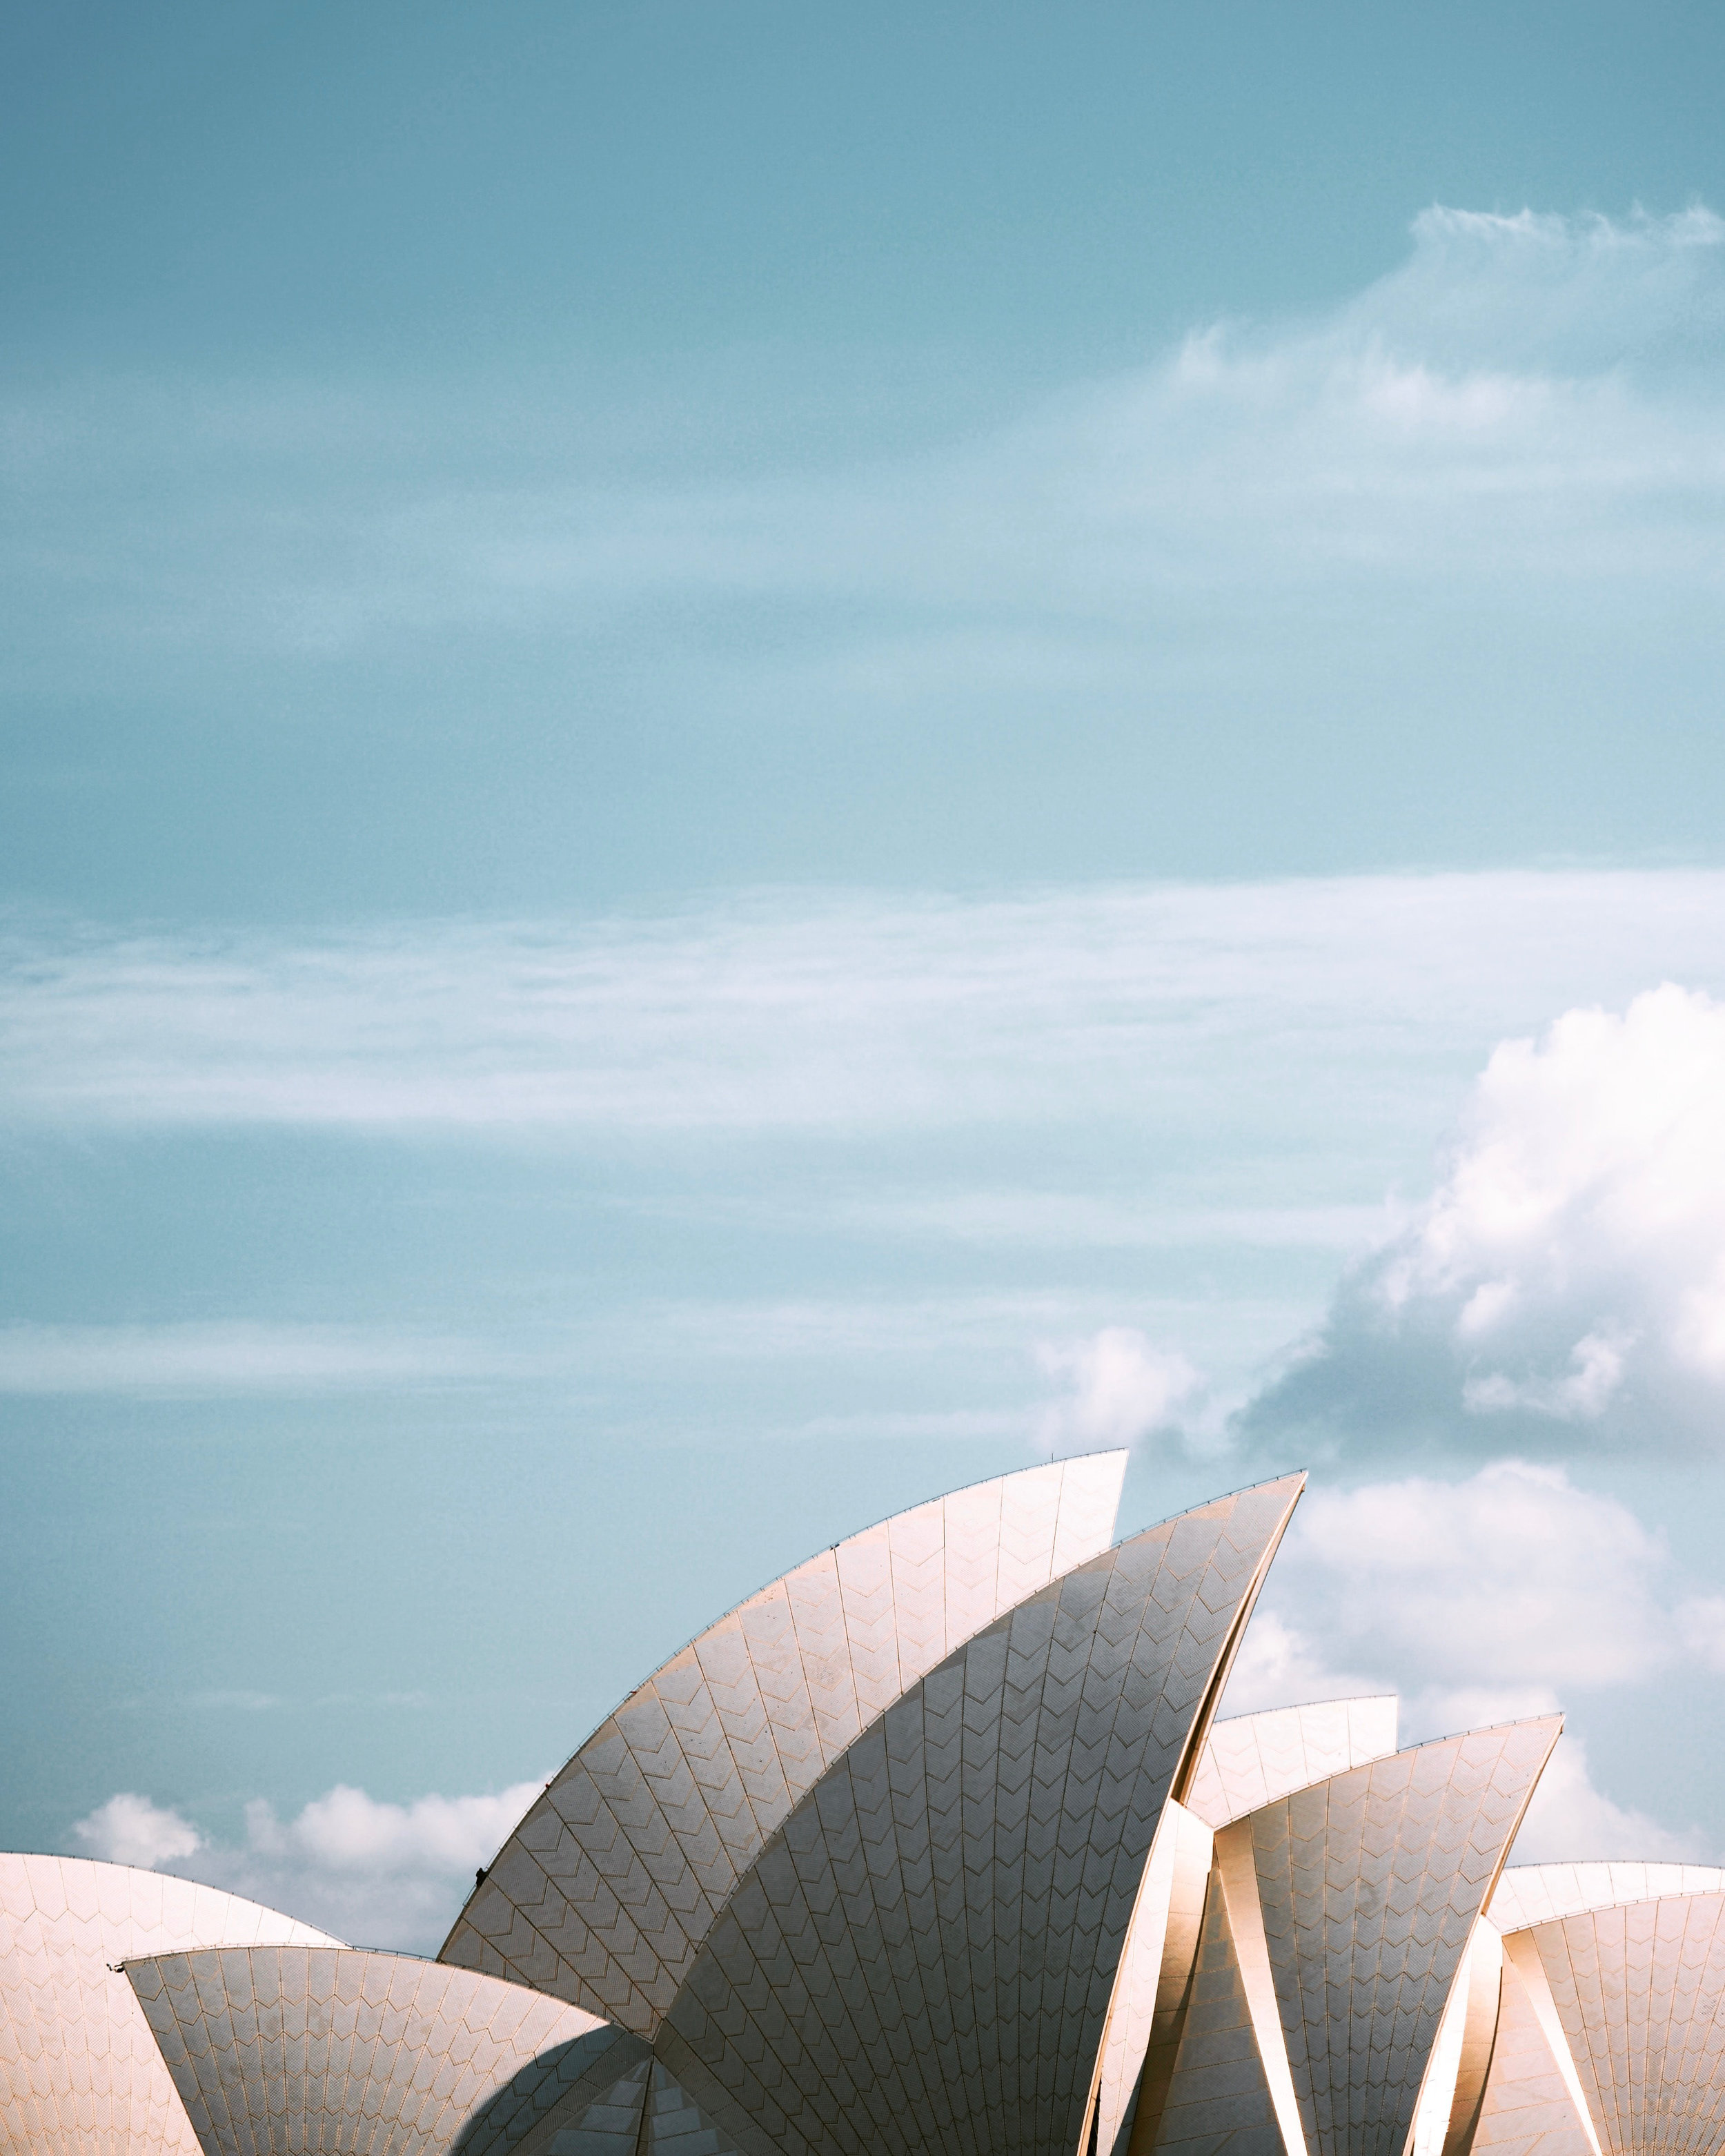 10 Facts About Denmark article. Image of Sydney Opera House.jpg